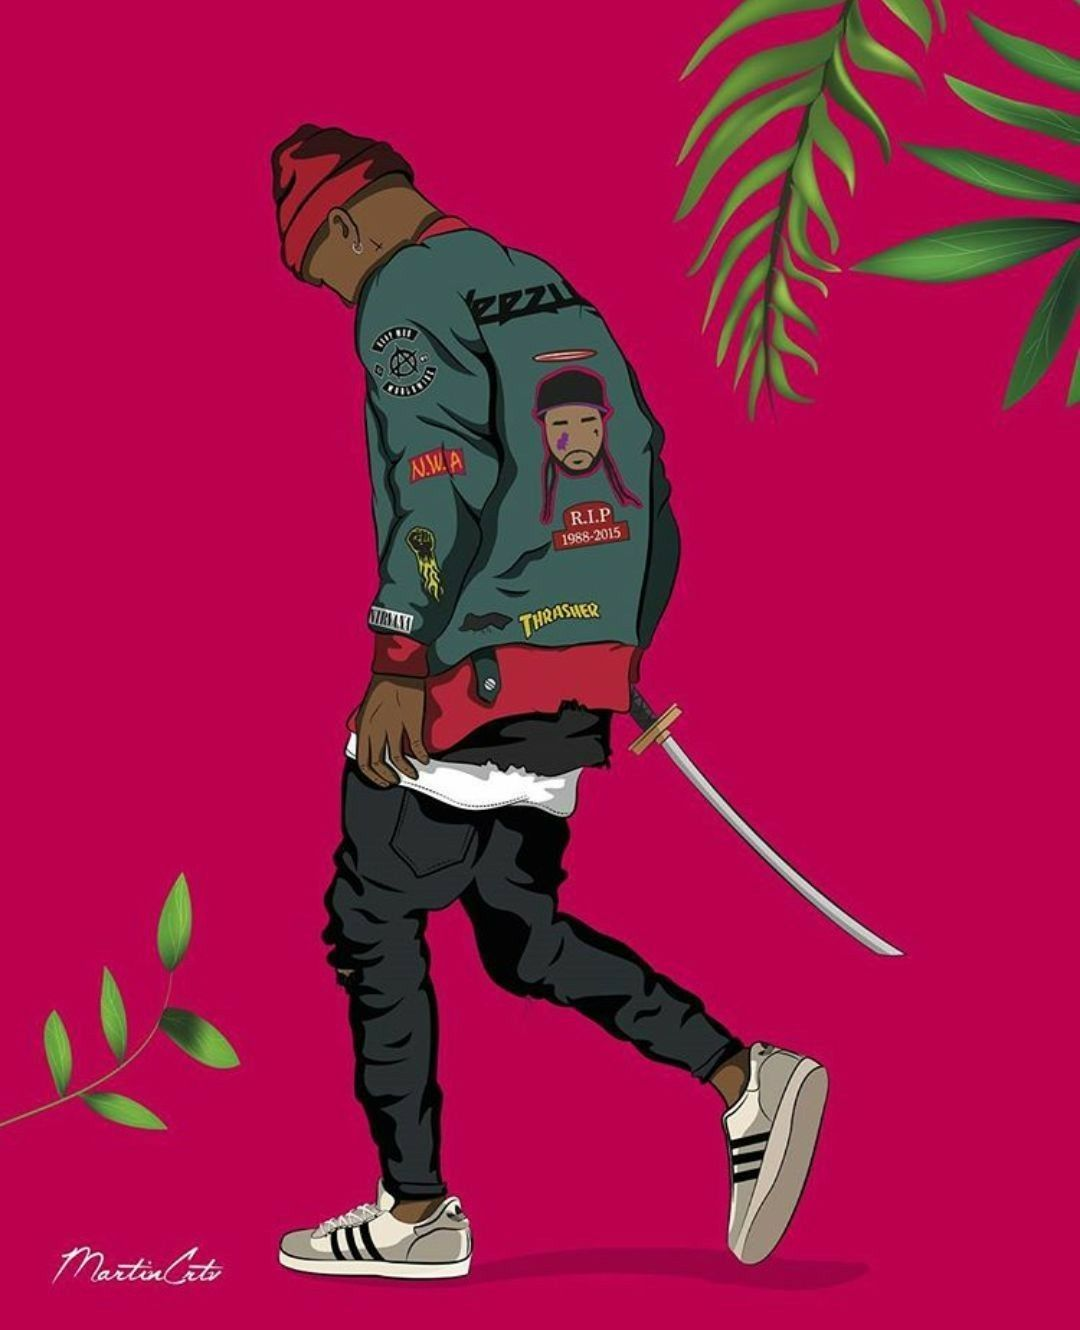 Pin by Michael Hidro on Anime hiphop Pinterest Black